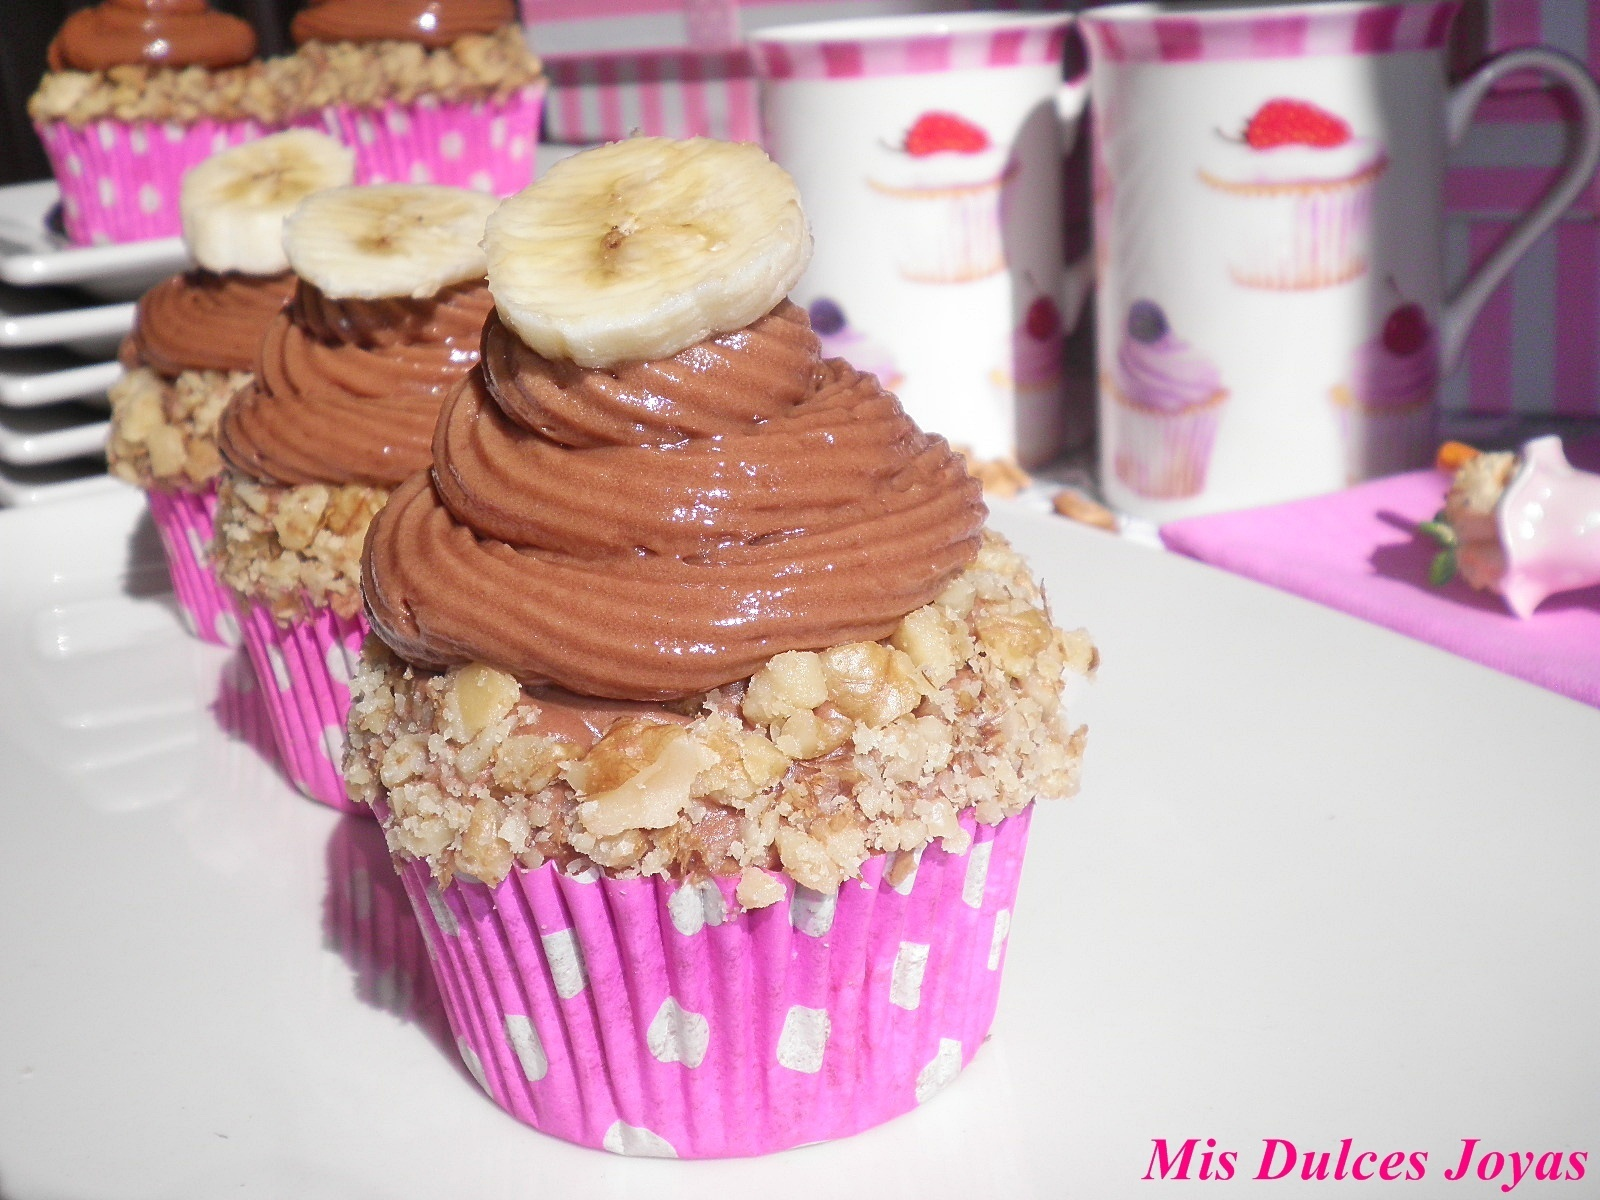 CUPCAKES DE BANANA Y NUECES con GLASEADO DE CHOCOLATE con leche (milk chocolate mousse frosting)